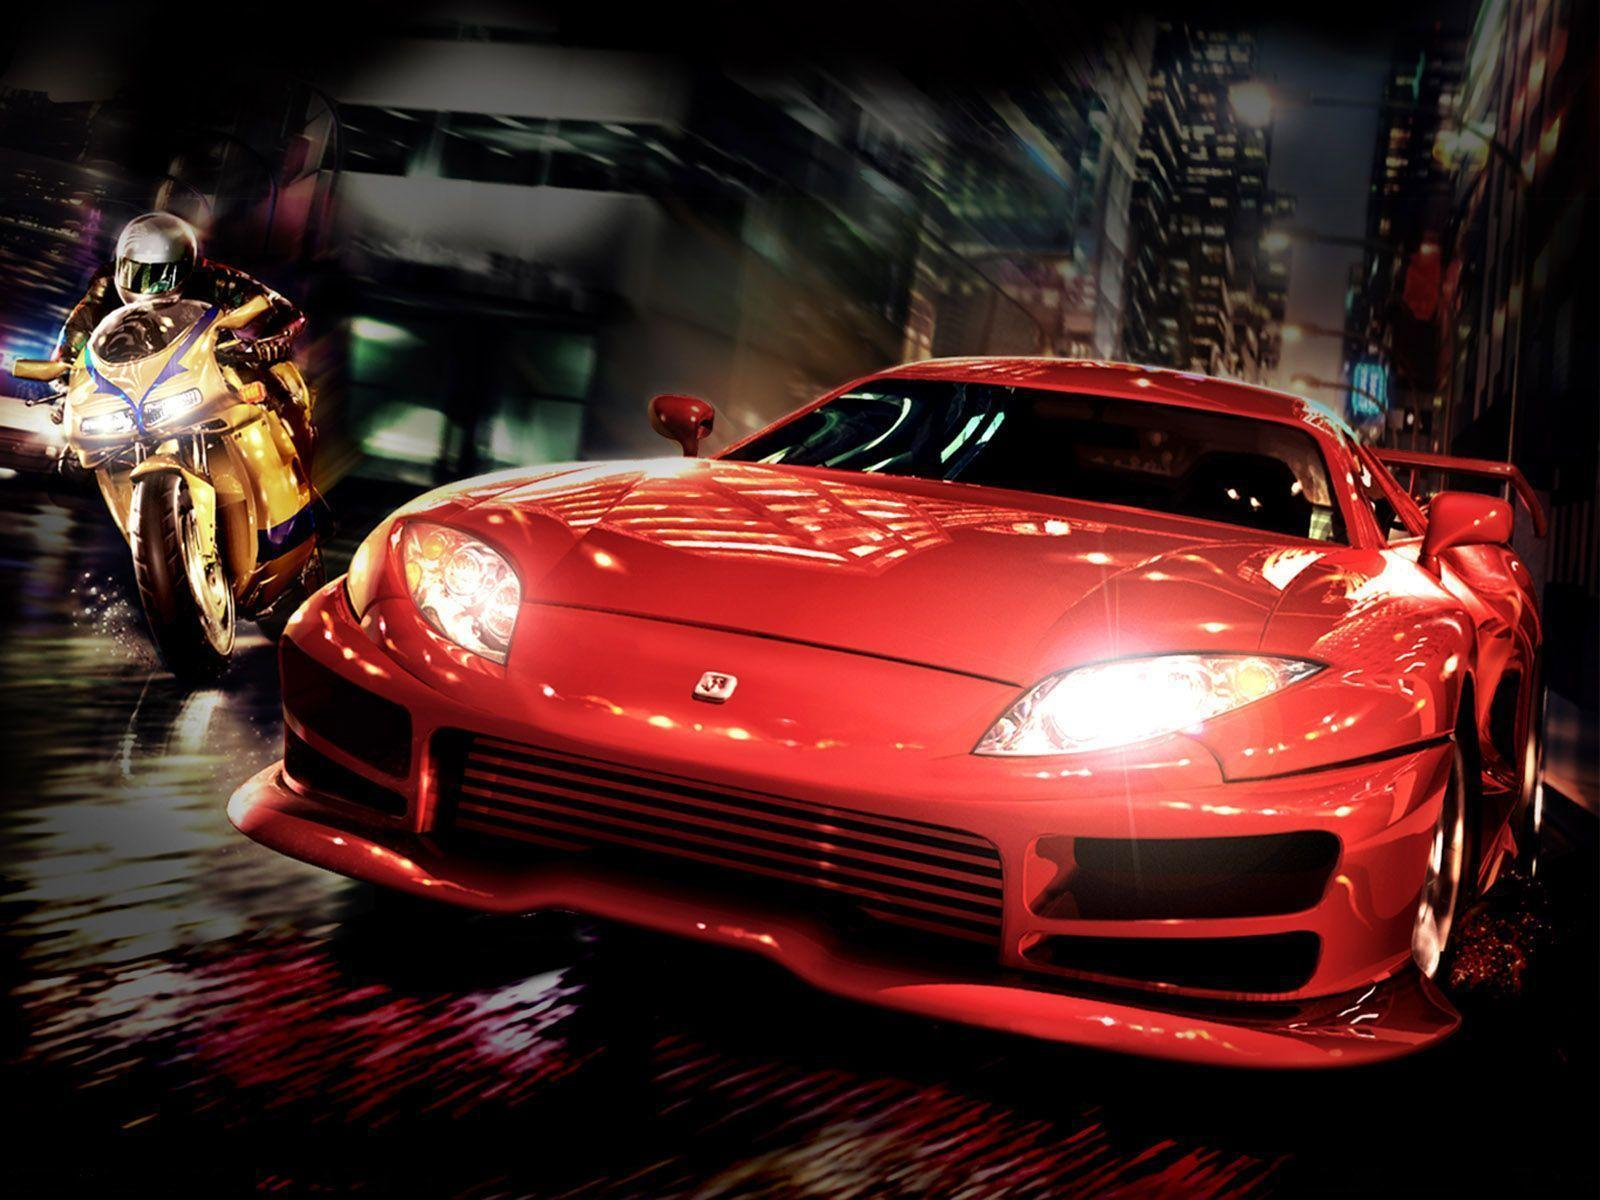 Cool Cars Wallpapers For Desktop Background 1 HD Wallpapers | lzamgs.